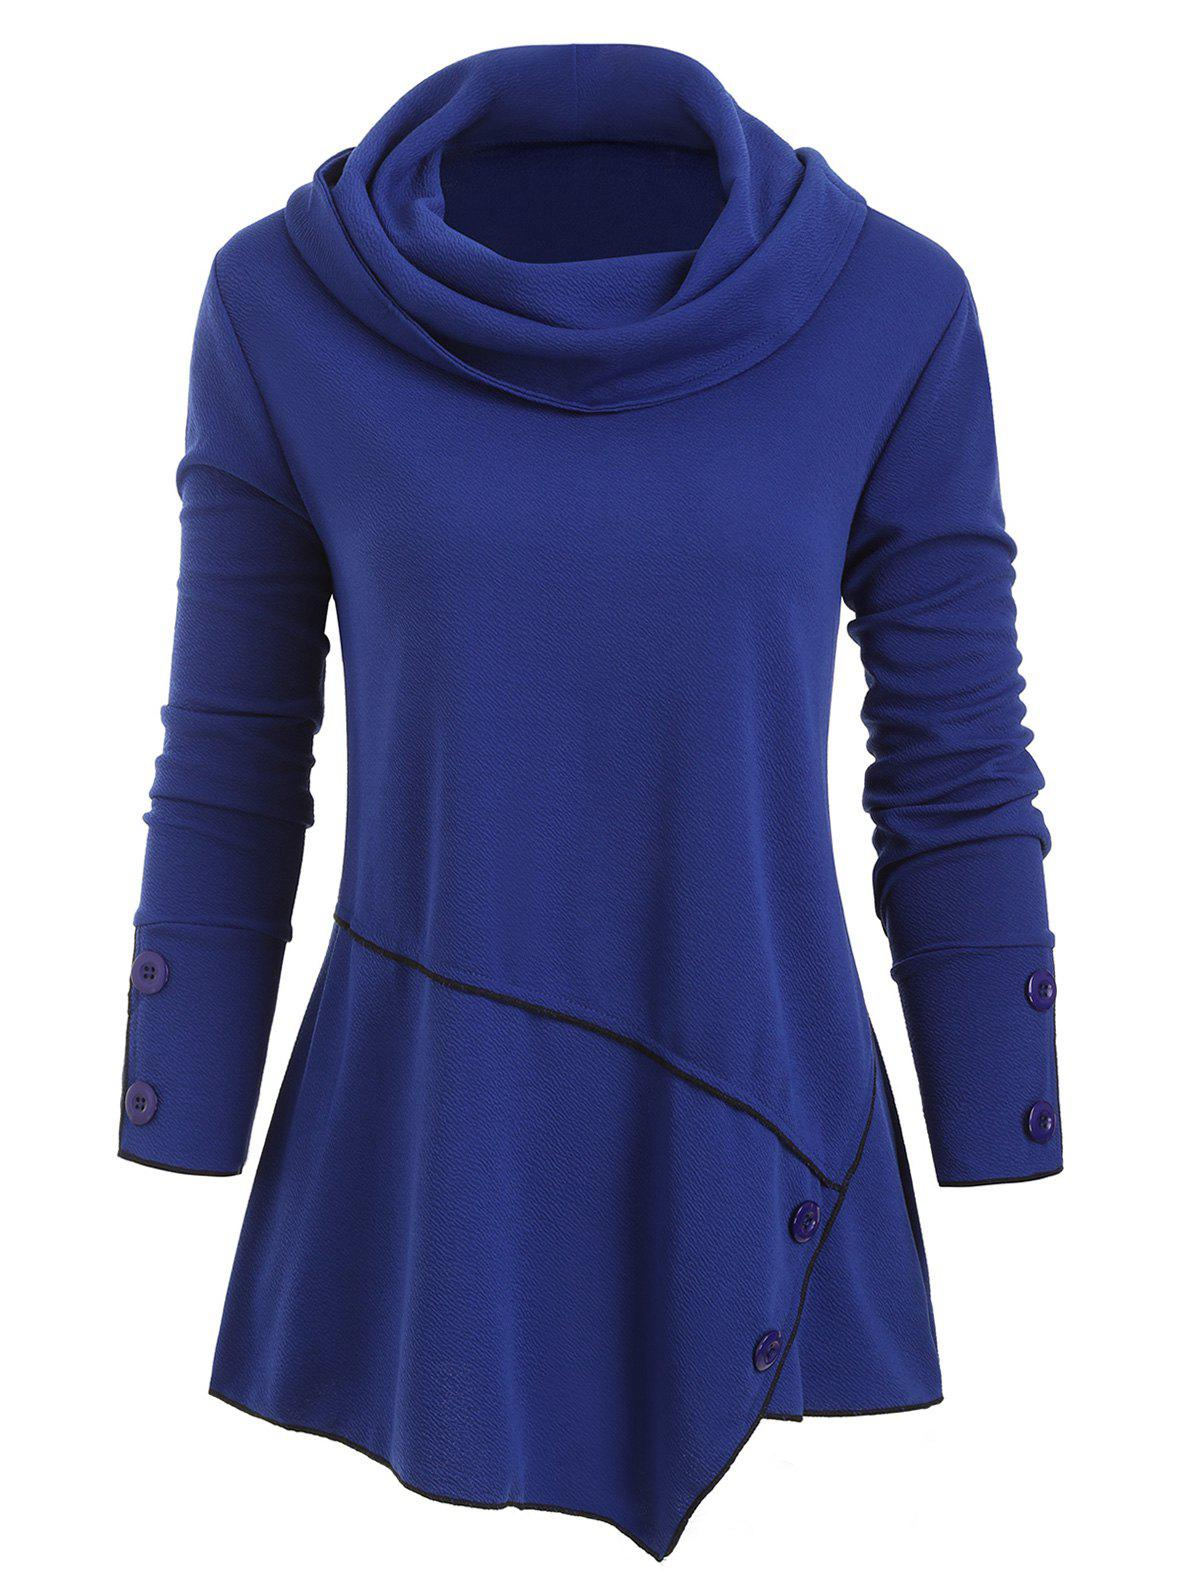 Online Cowl Neck Buttons Long Sleeves Top